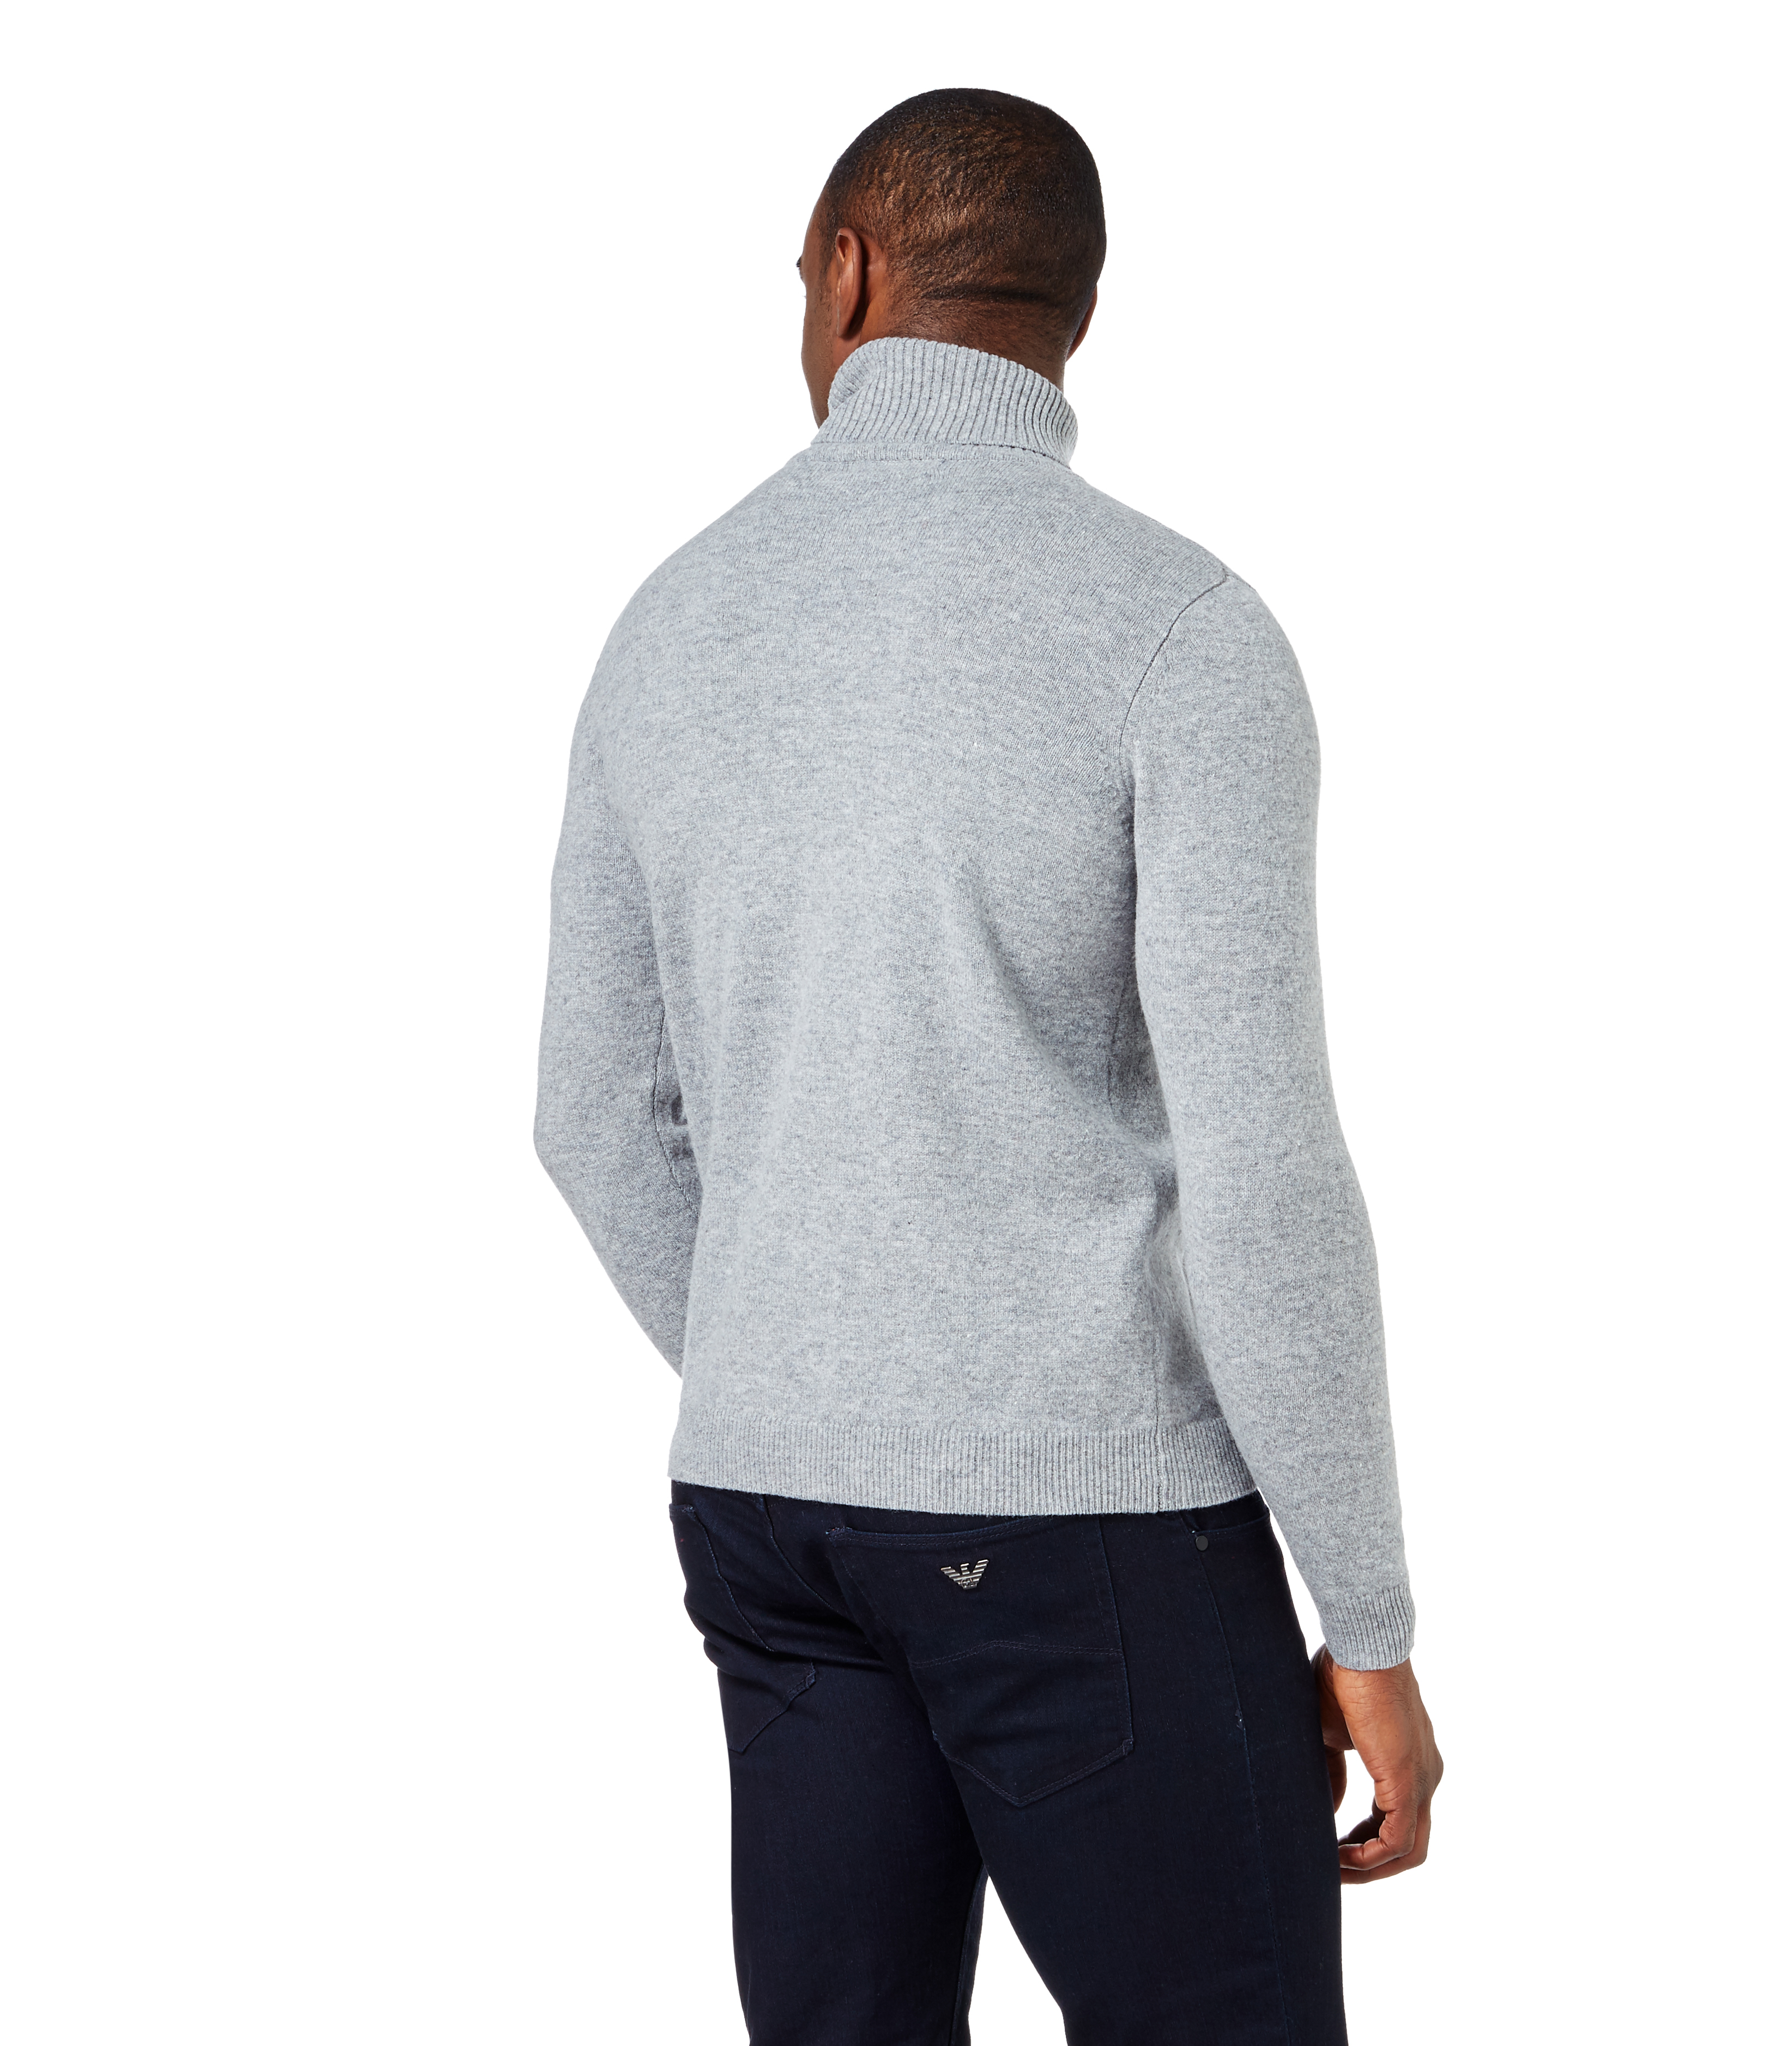 how to wear polo neck sweater